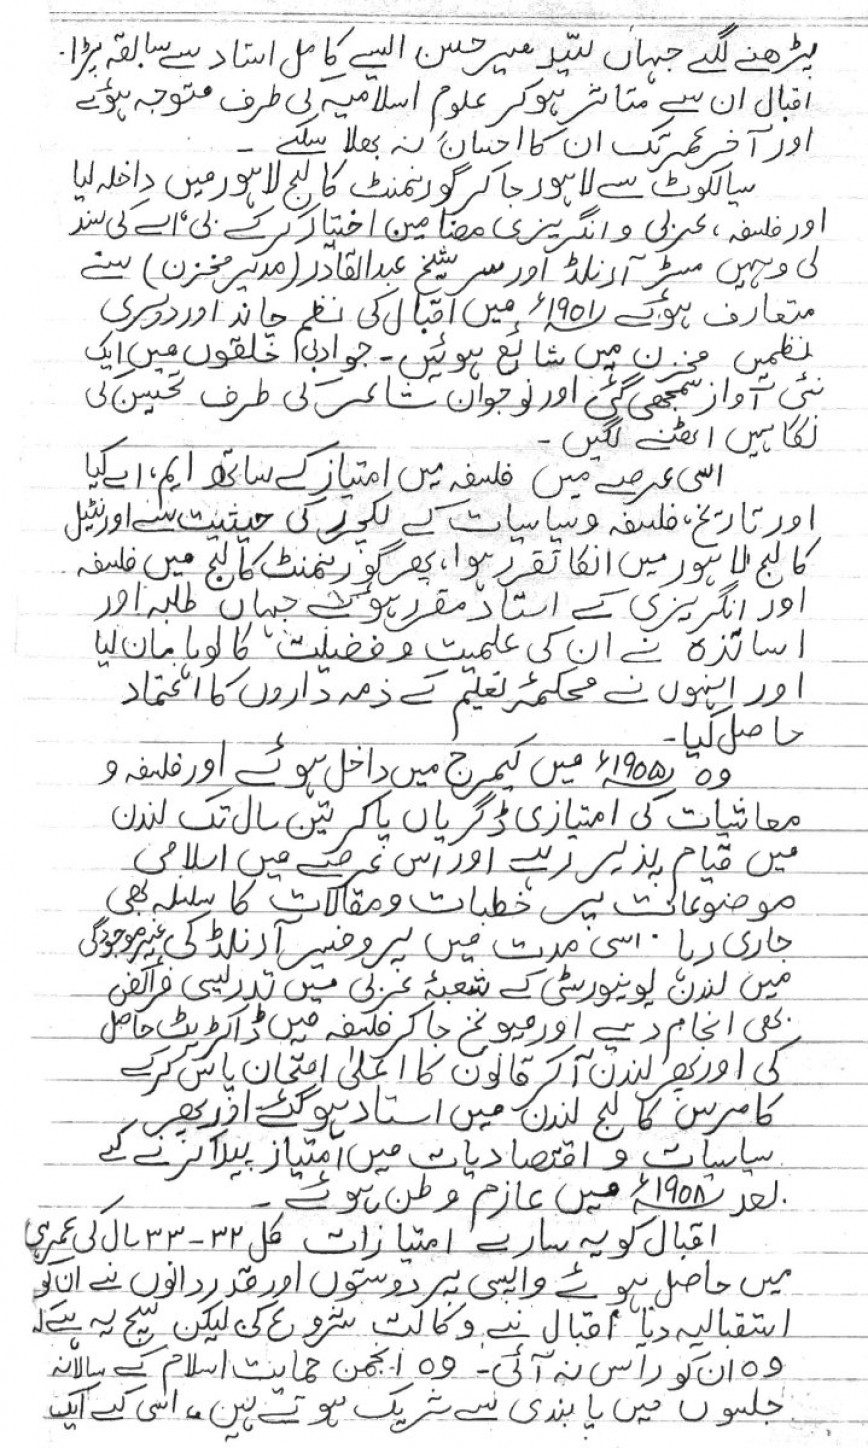 008 Jpg Essay Example Urdu Allama Dreaded Iqbal On In For Class 10 With Poetry Ka Shaheen Headings And 868